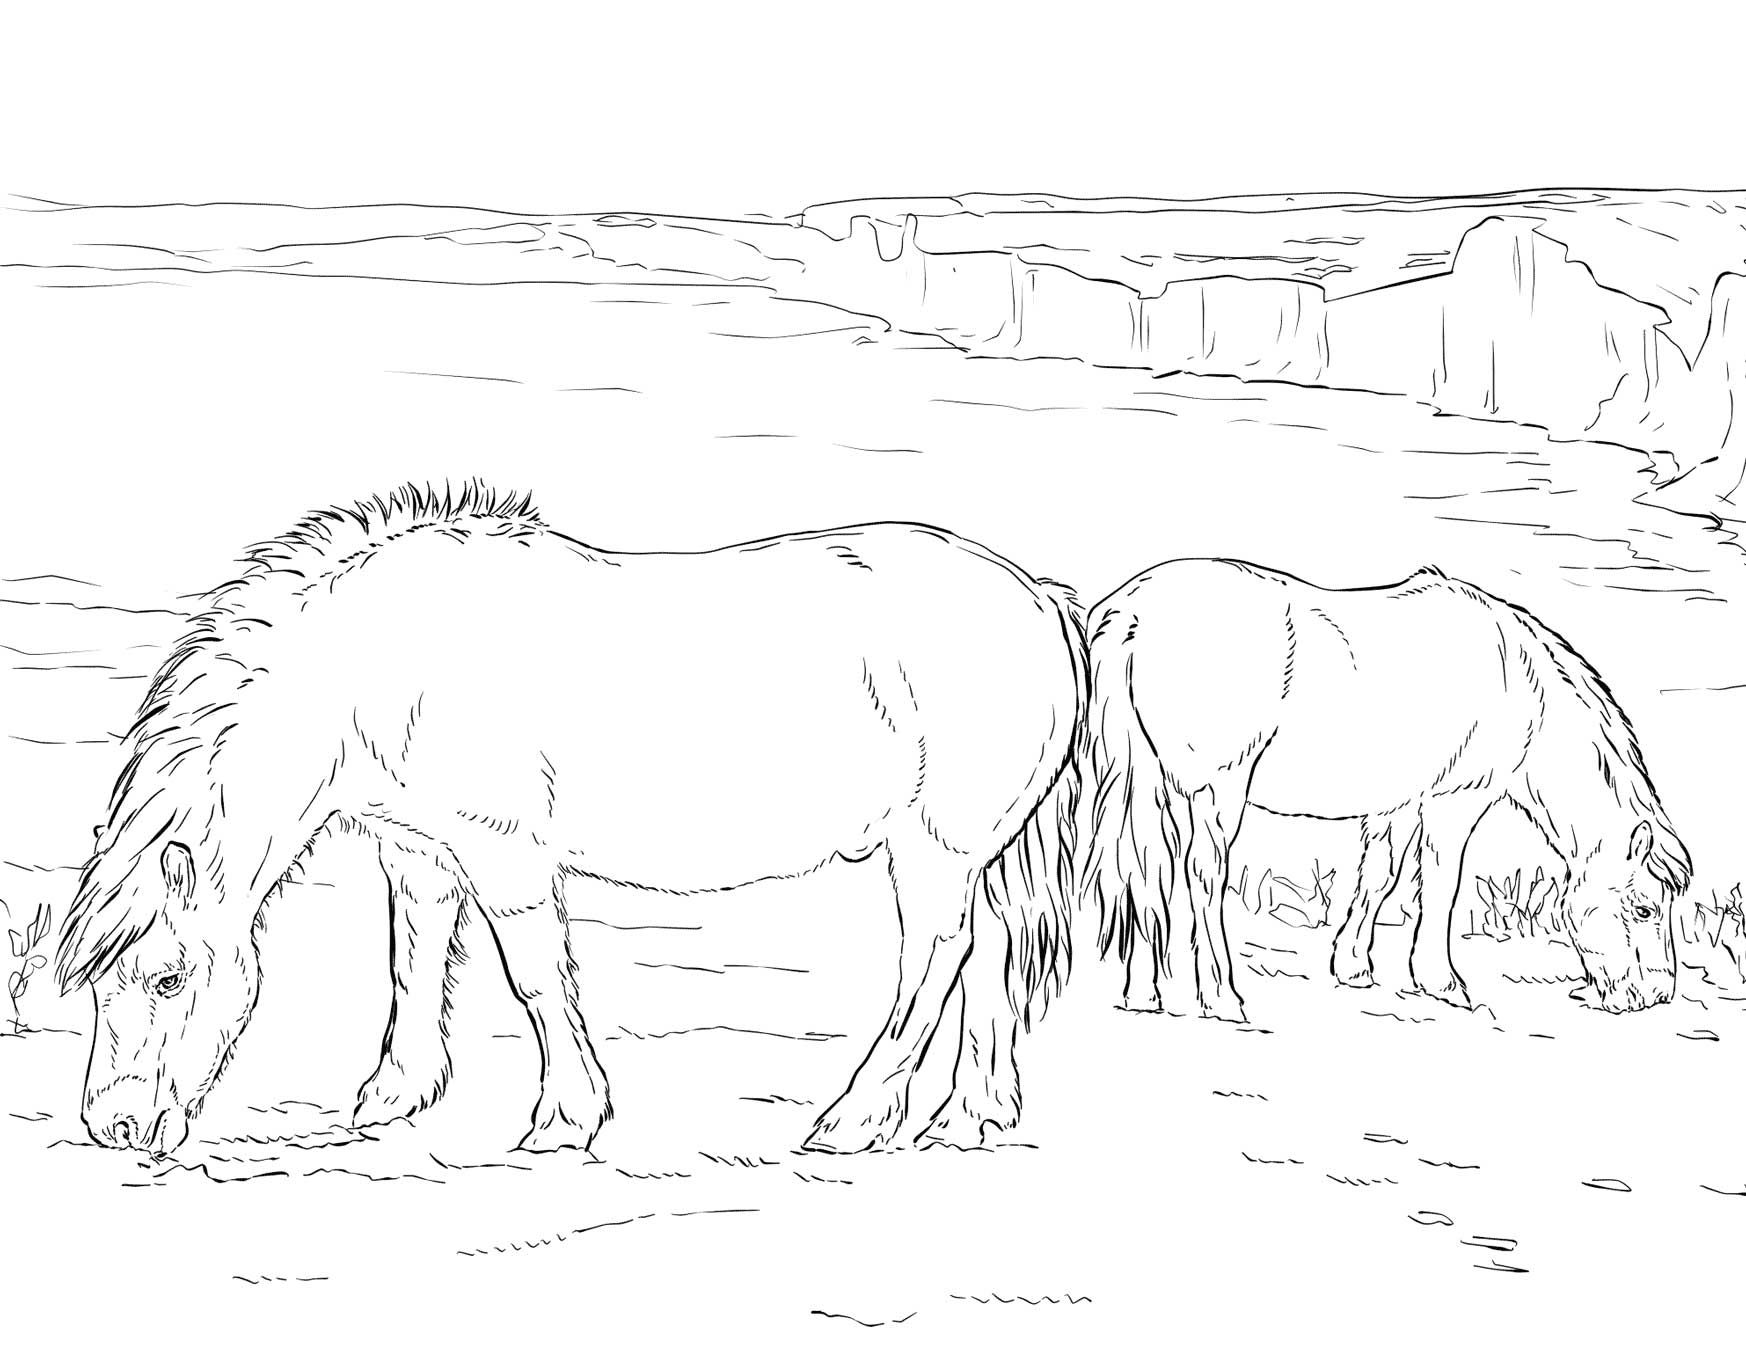 Two Ponies Grazing Coloring Page Horse Coloring Pages Animal Coloring Pages Horse Coloring Books